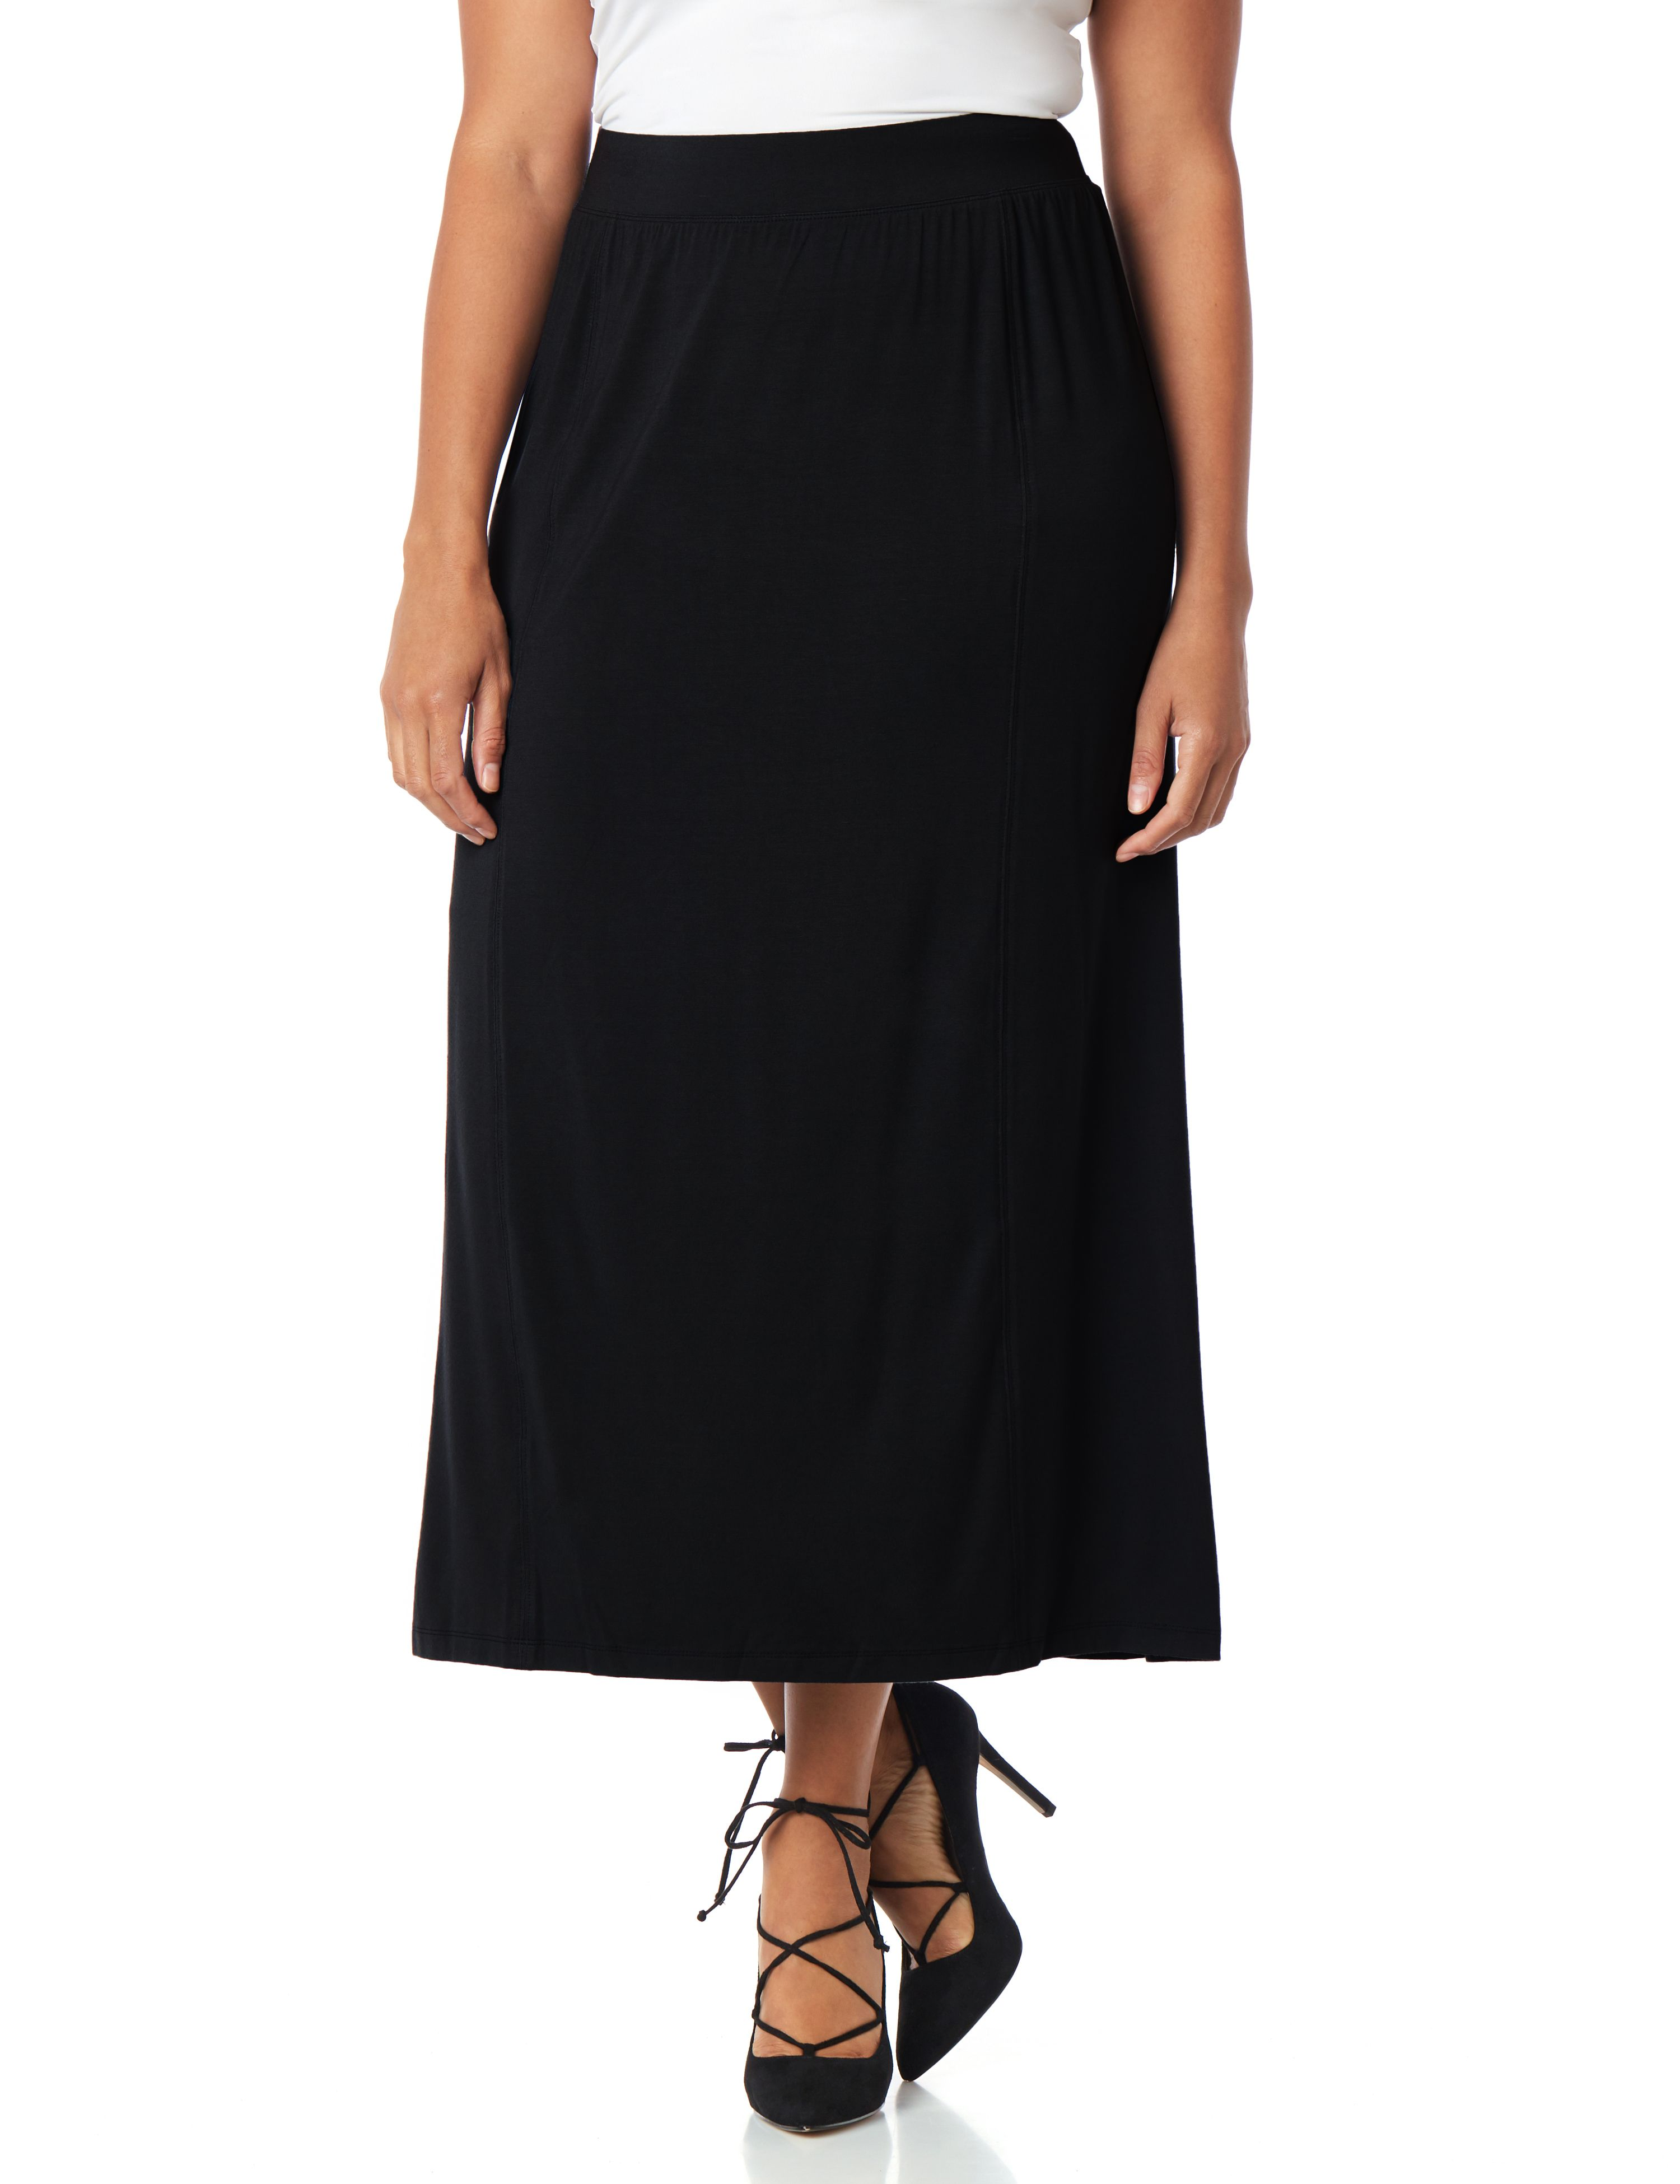 AnyWear Modern Midi Skirt 1086706 Midi Skirt with Side Slits MP-300079960